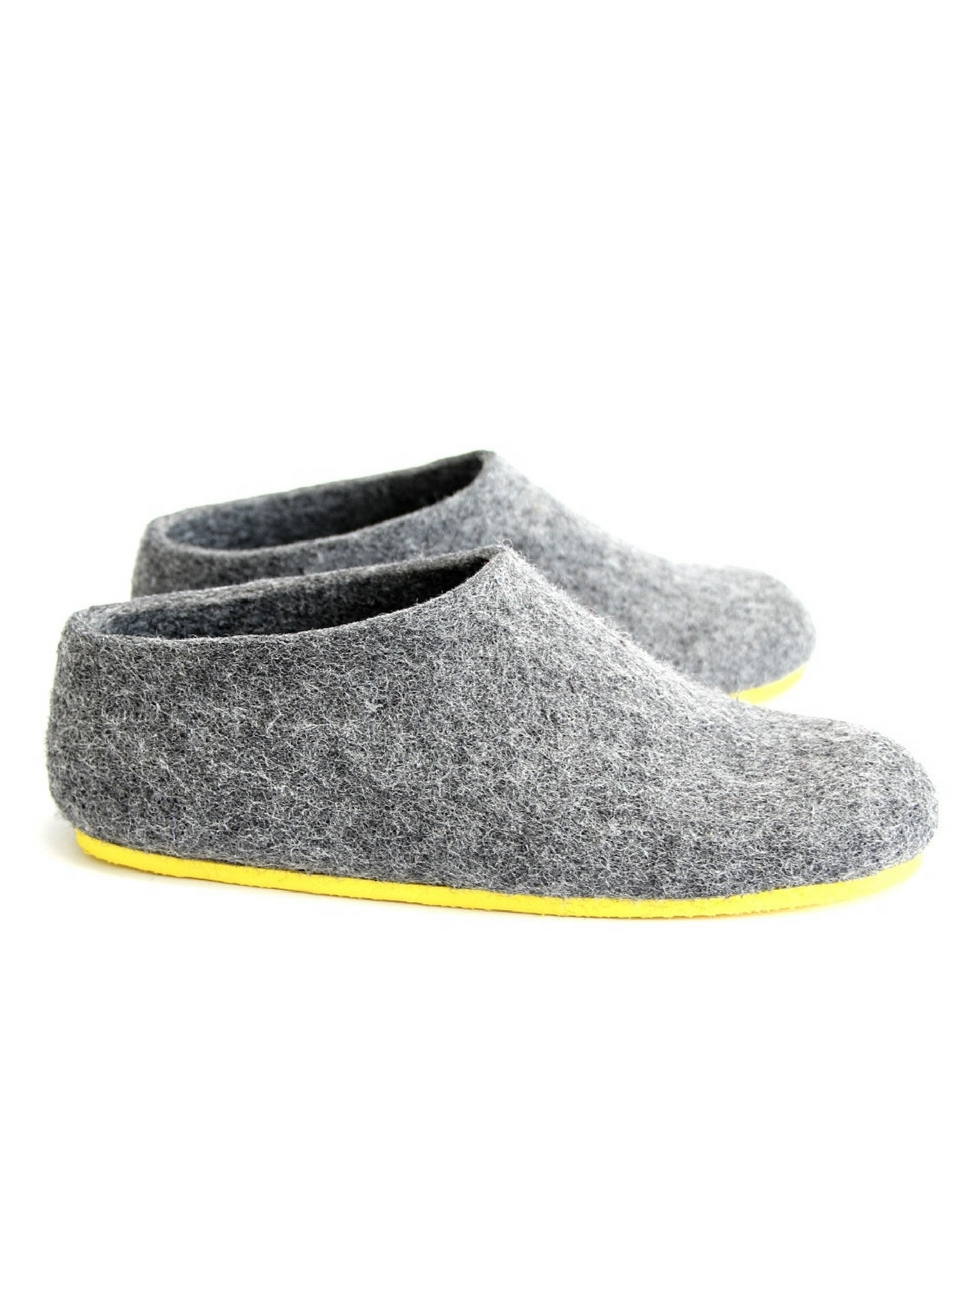 504a214822d3d Women's Felt House Shoes Grey Minimalist — Luxury wool felt shoes, felt  boots, boiled wool slippers, woolen clogs - custom made at feltforma.com